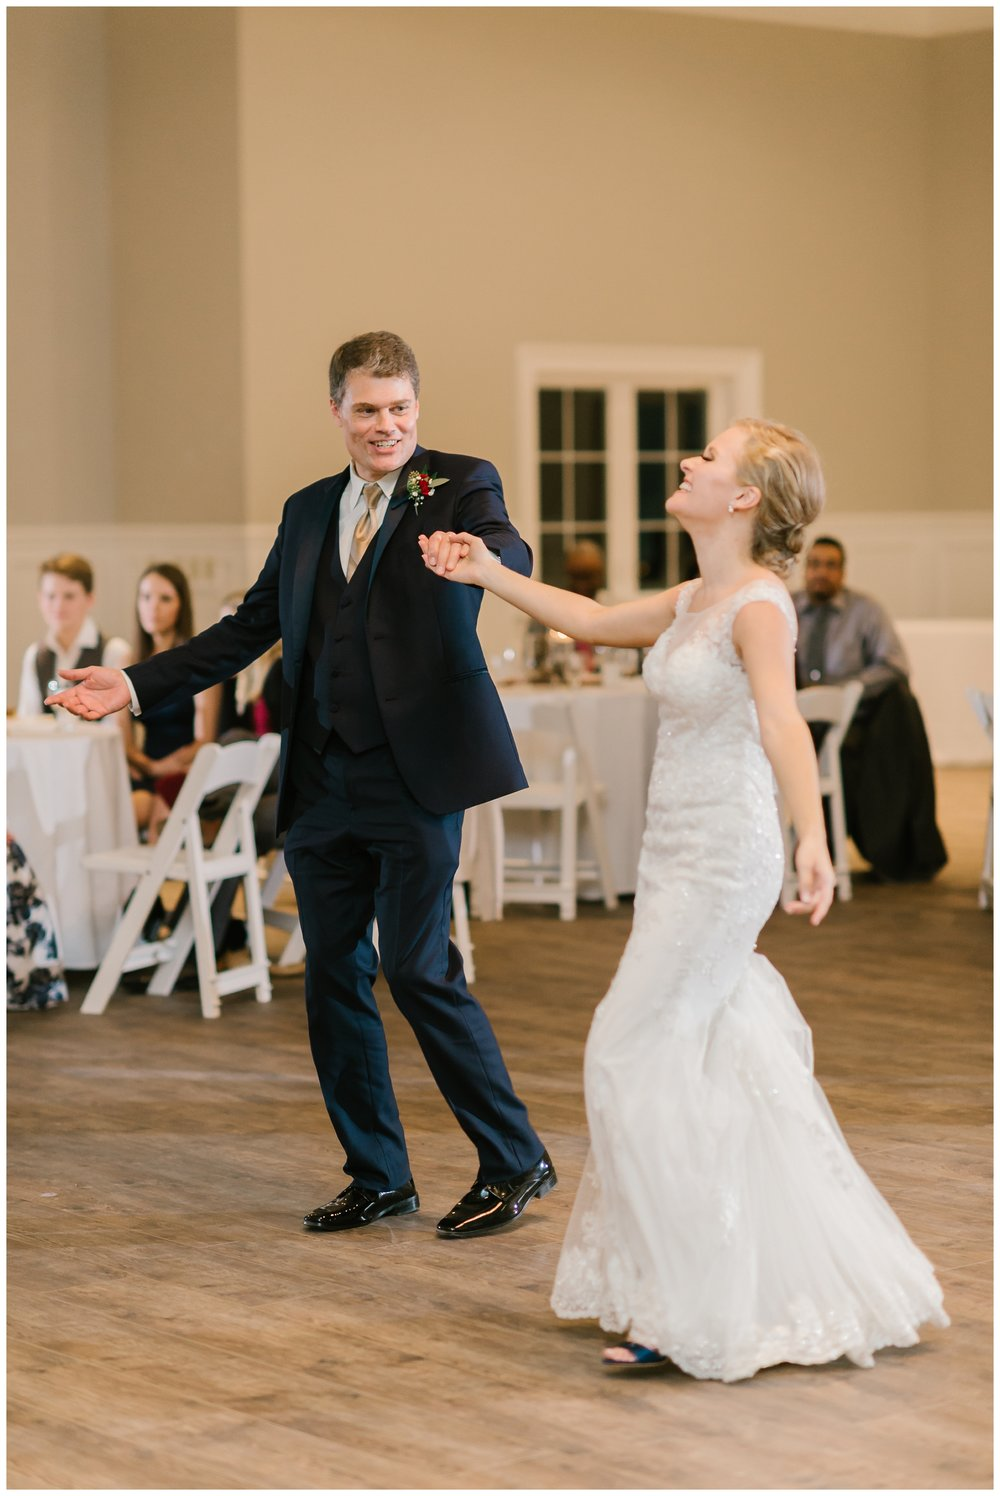 Rebecca_Shehorn_Photography_Indianapolis_Wedding_Photographer_7639.jpg